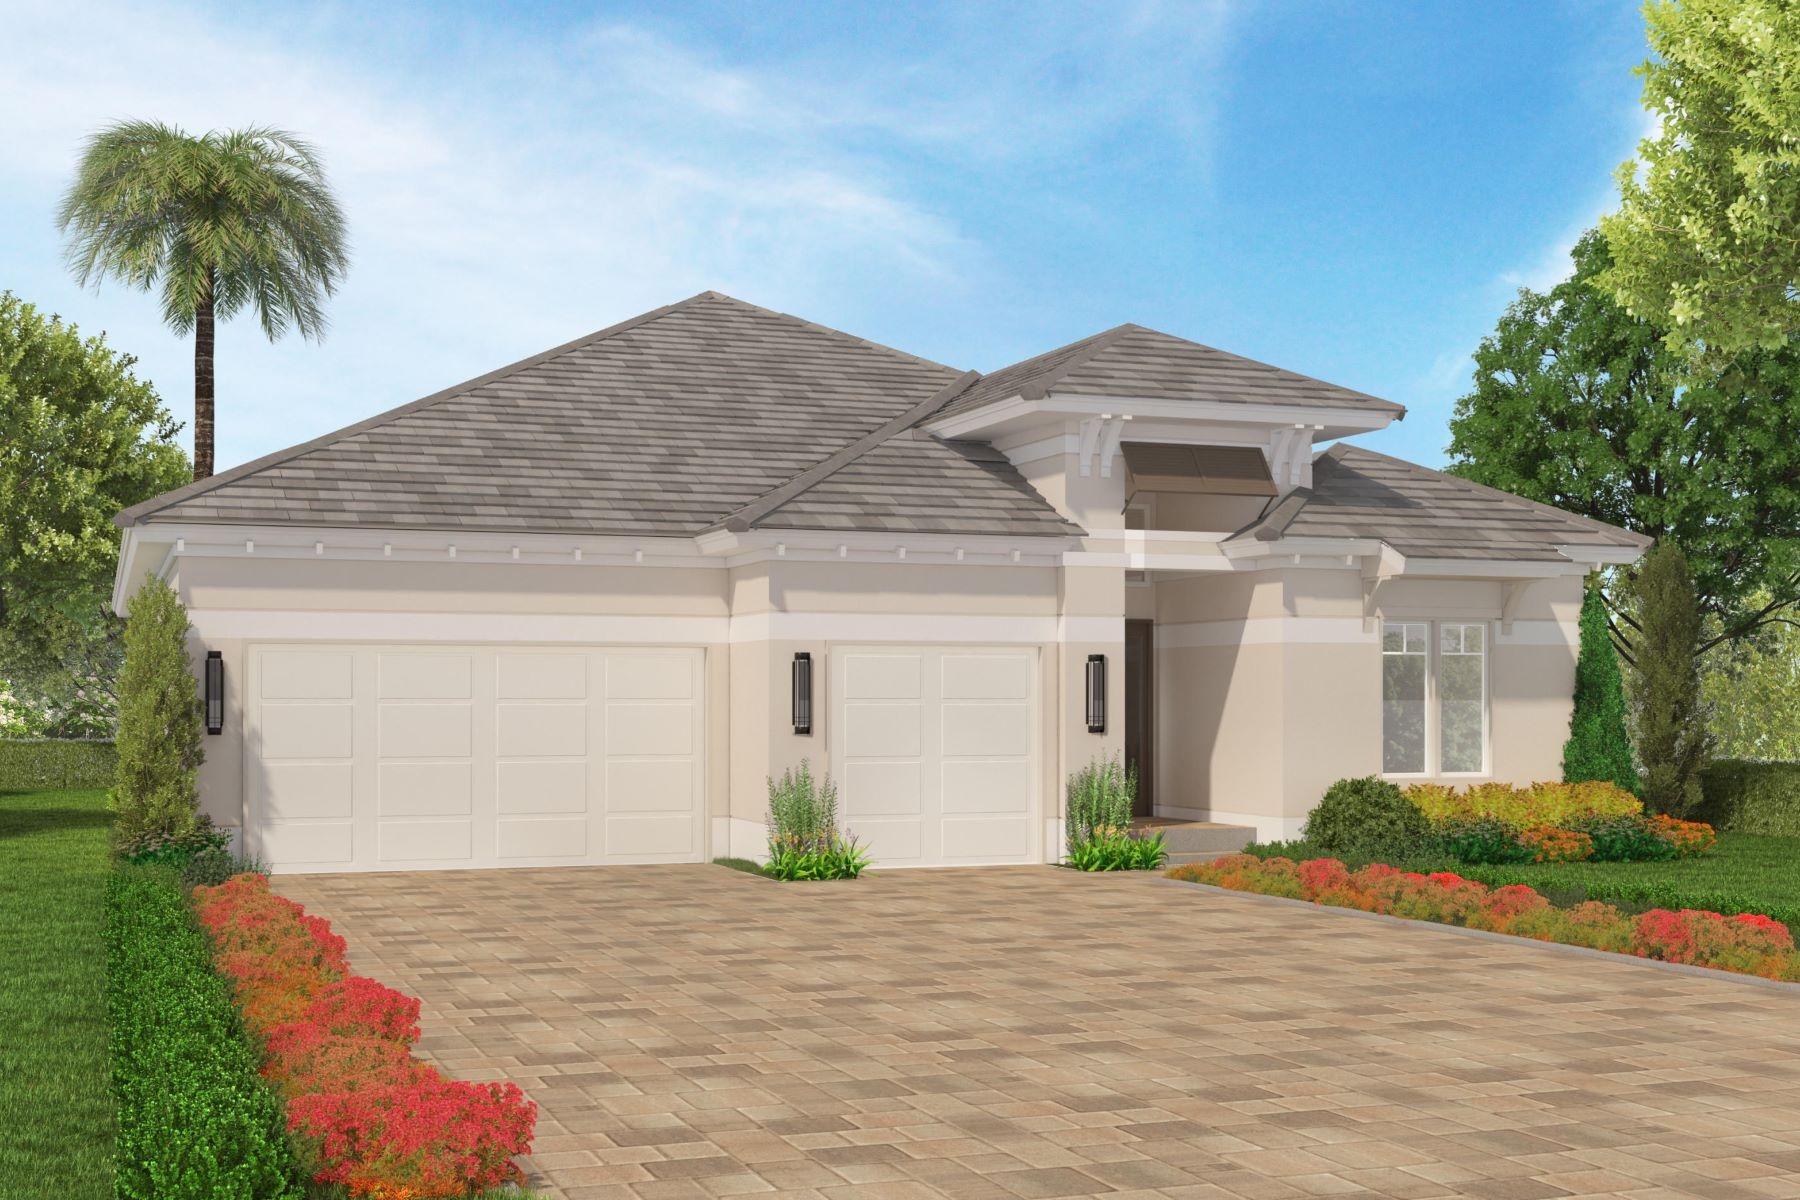 9261 Orchid Cove Circle  Vero Beach, Florida 32963 Stati Uniti